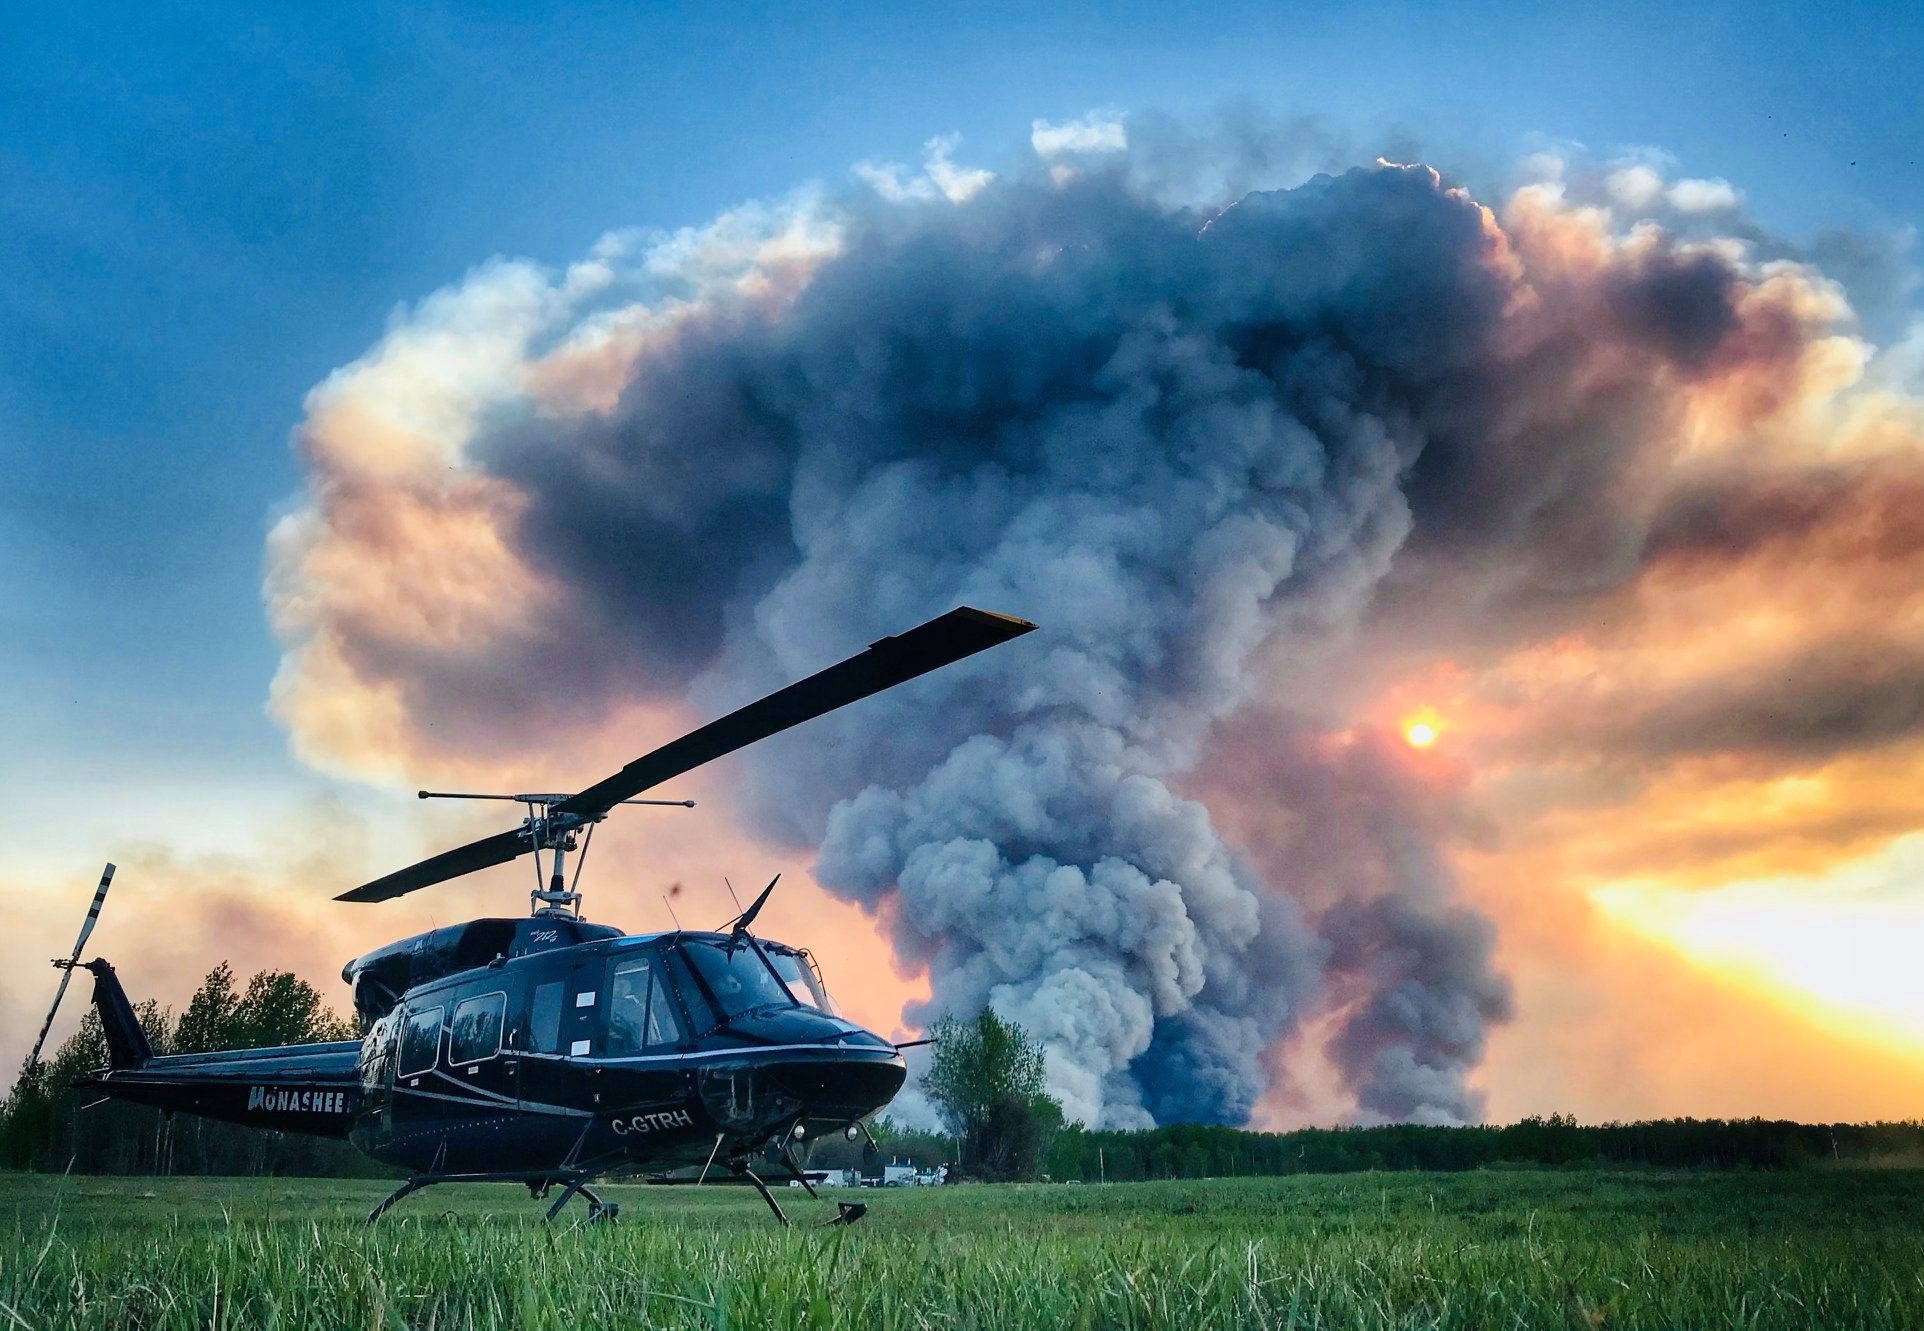 A Monashee Helicopters Bell 212 during a wildfire in High Level, Alberta. Photo submitted by Milan Skrecek